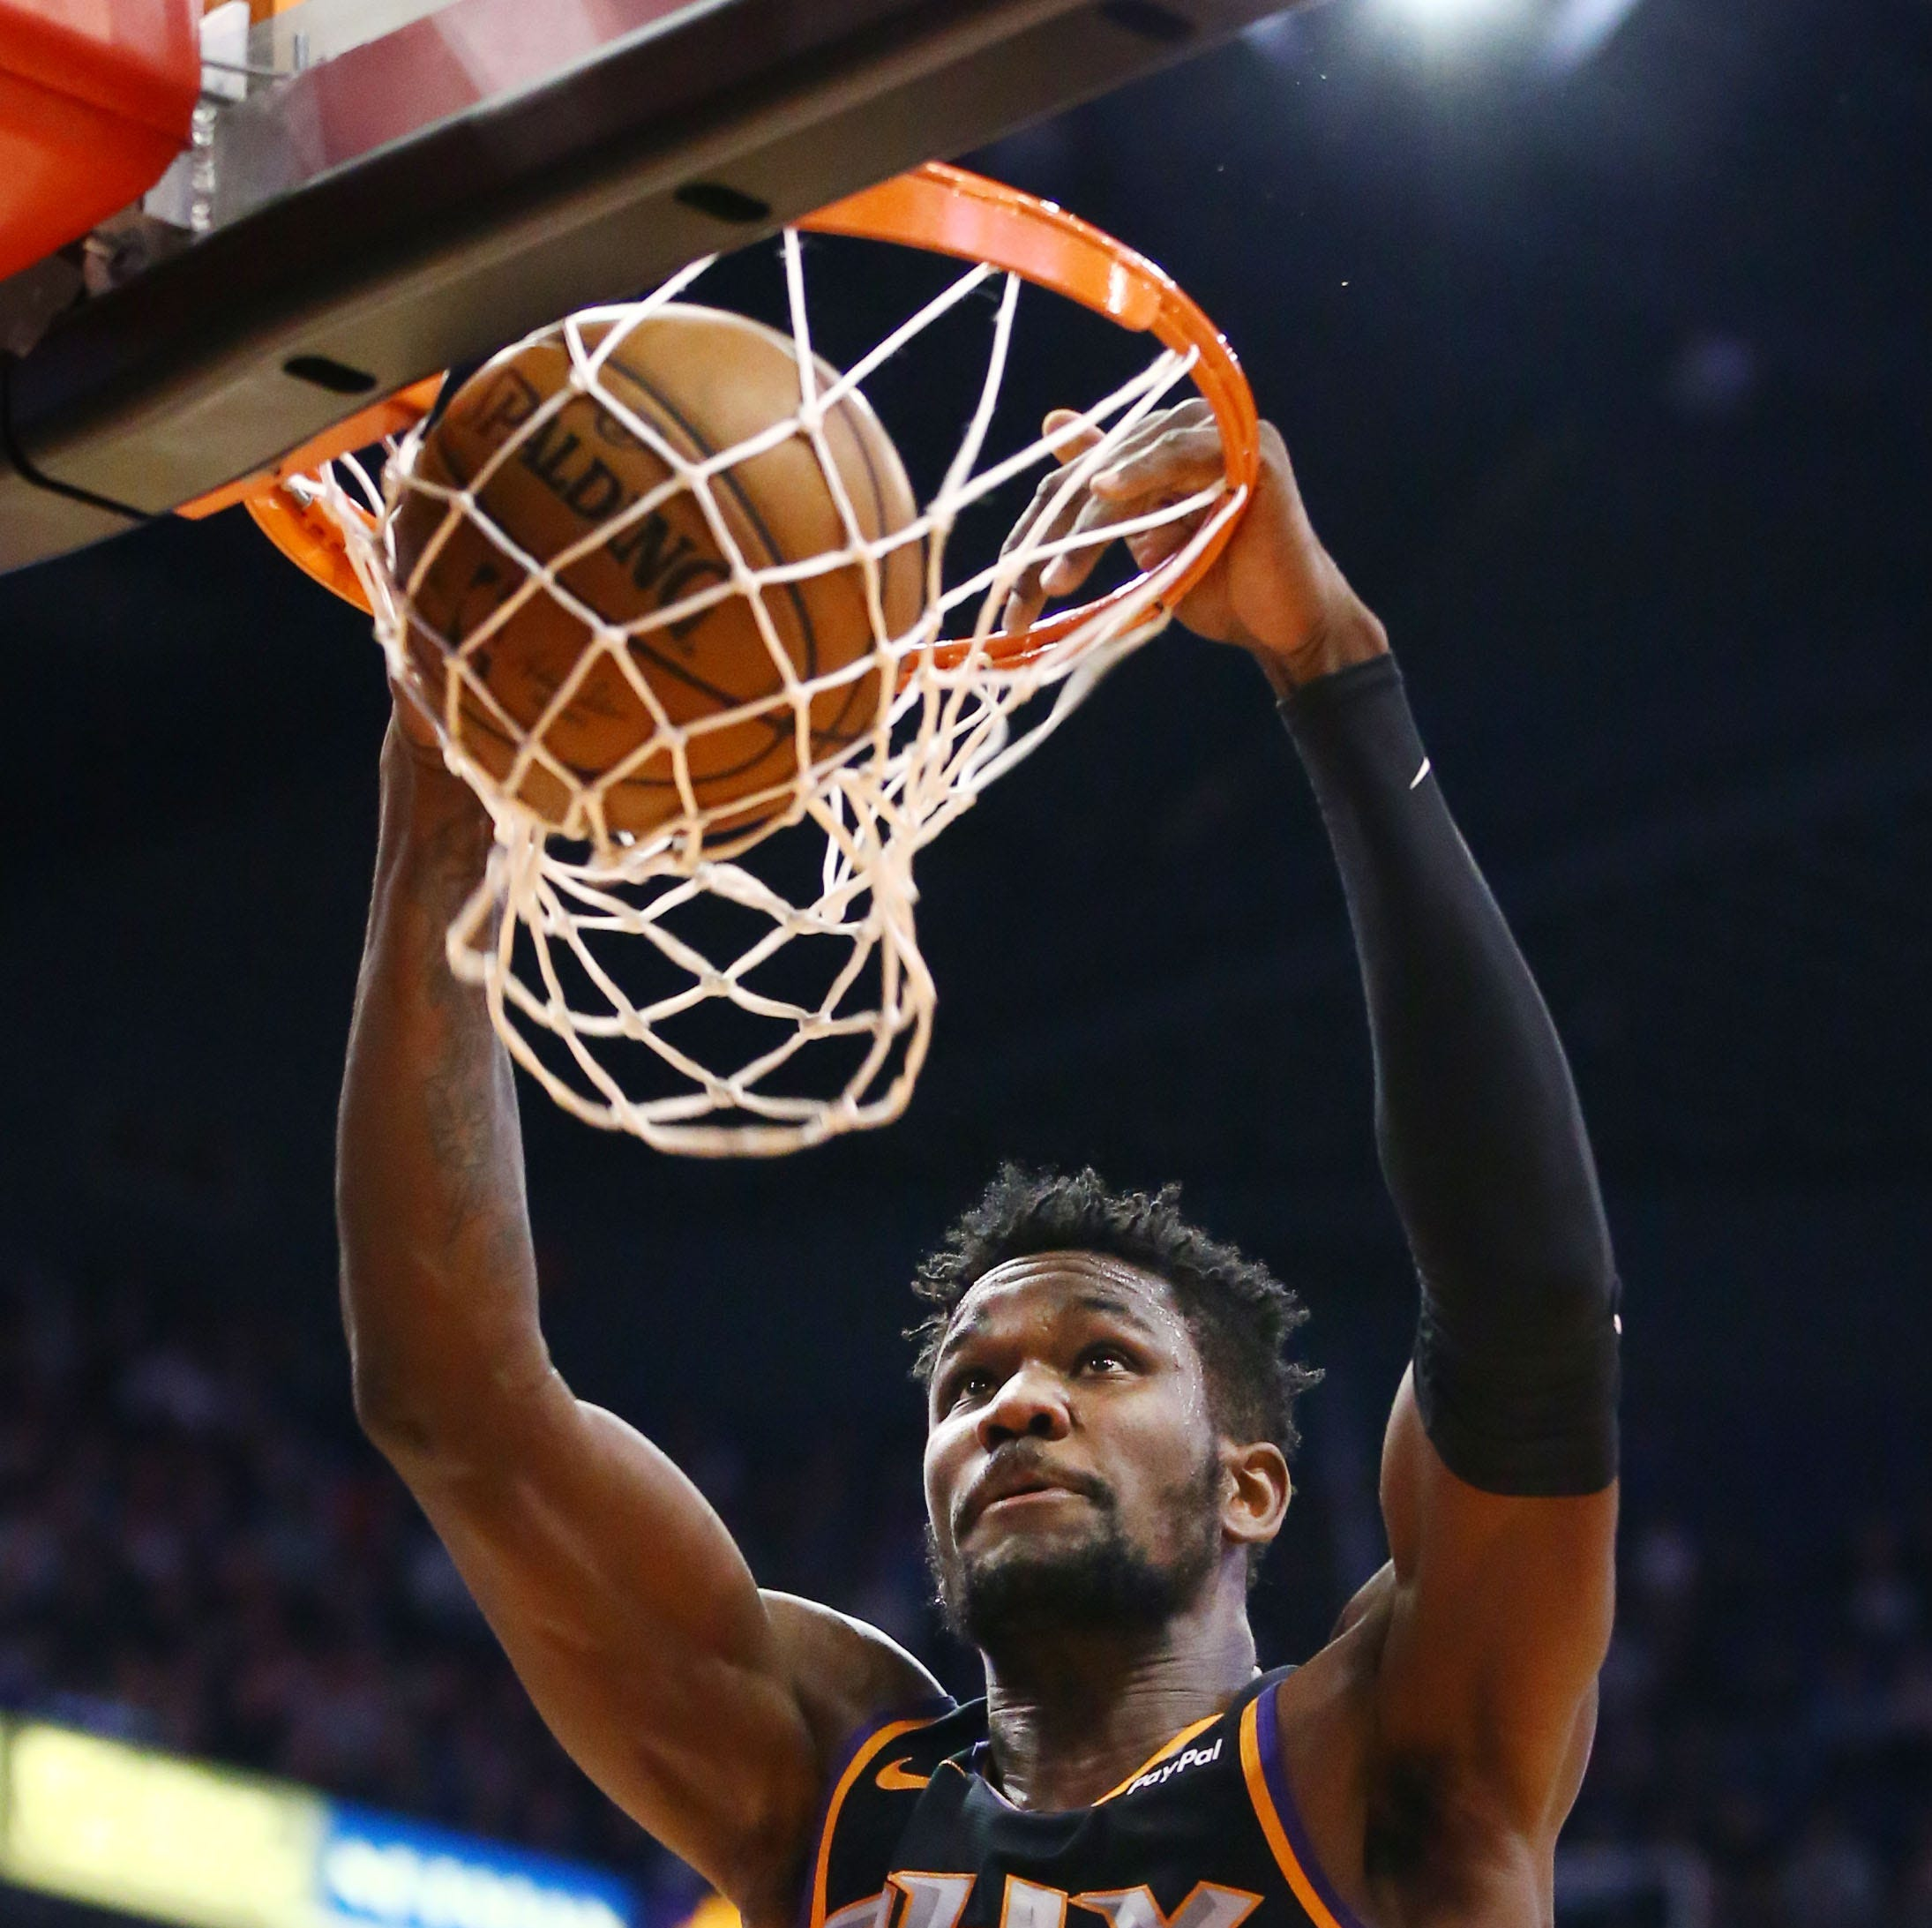 Phoenix Suns have the fifth-lowest TV ratings in NBA, but it could be looking up